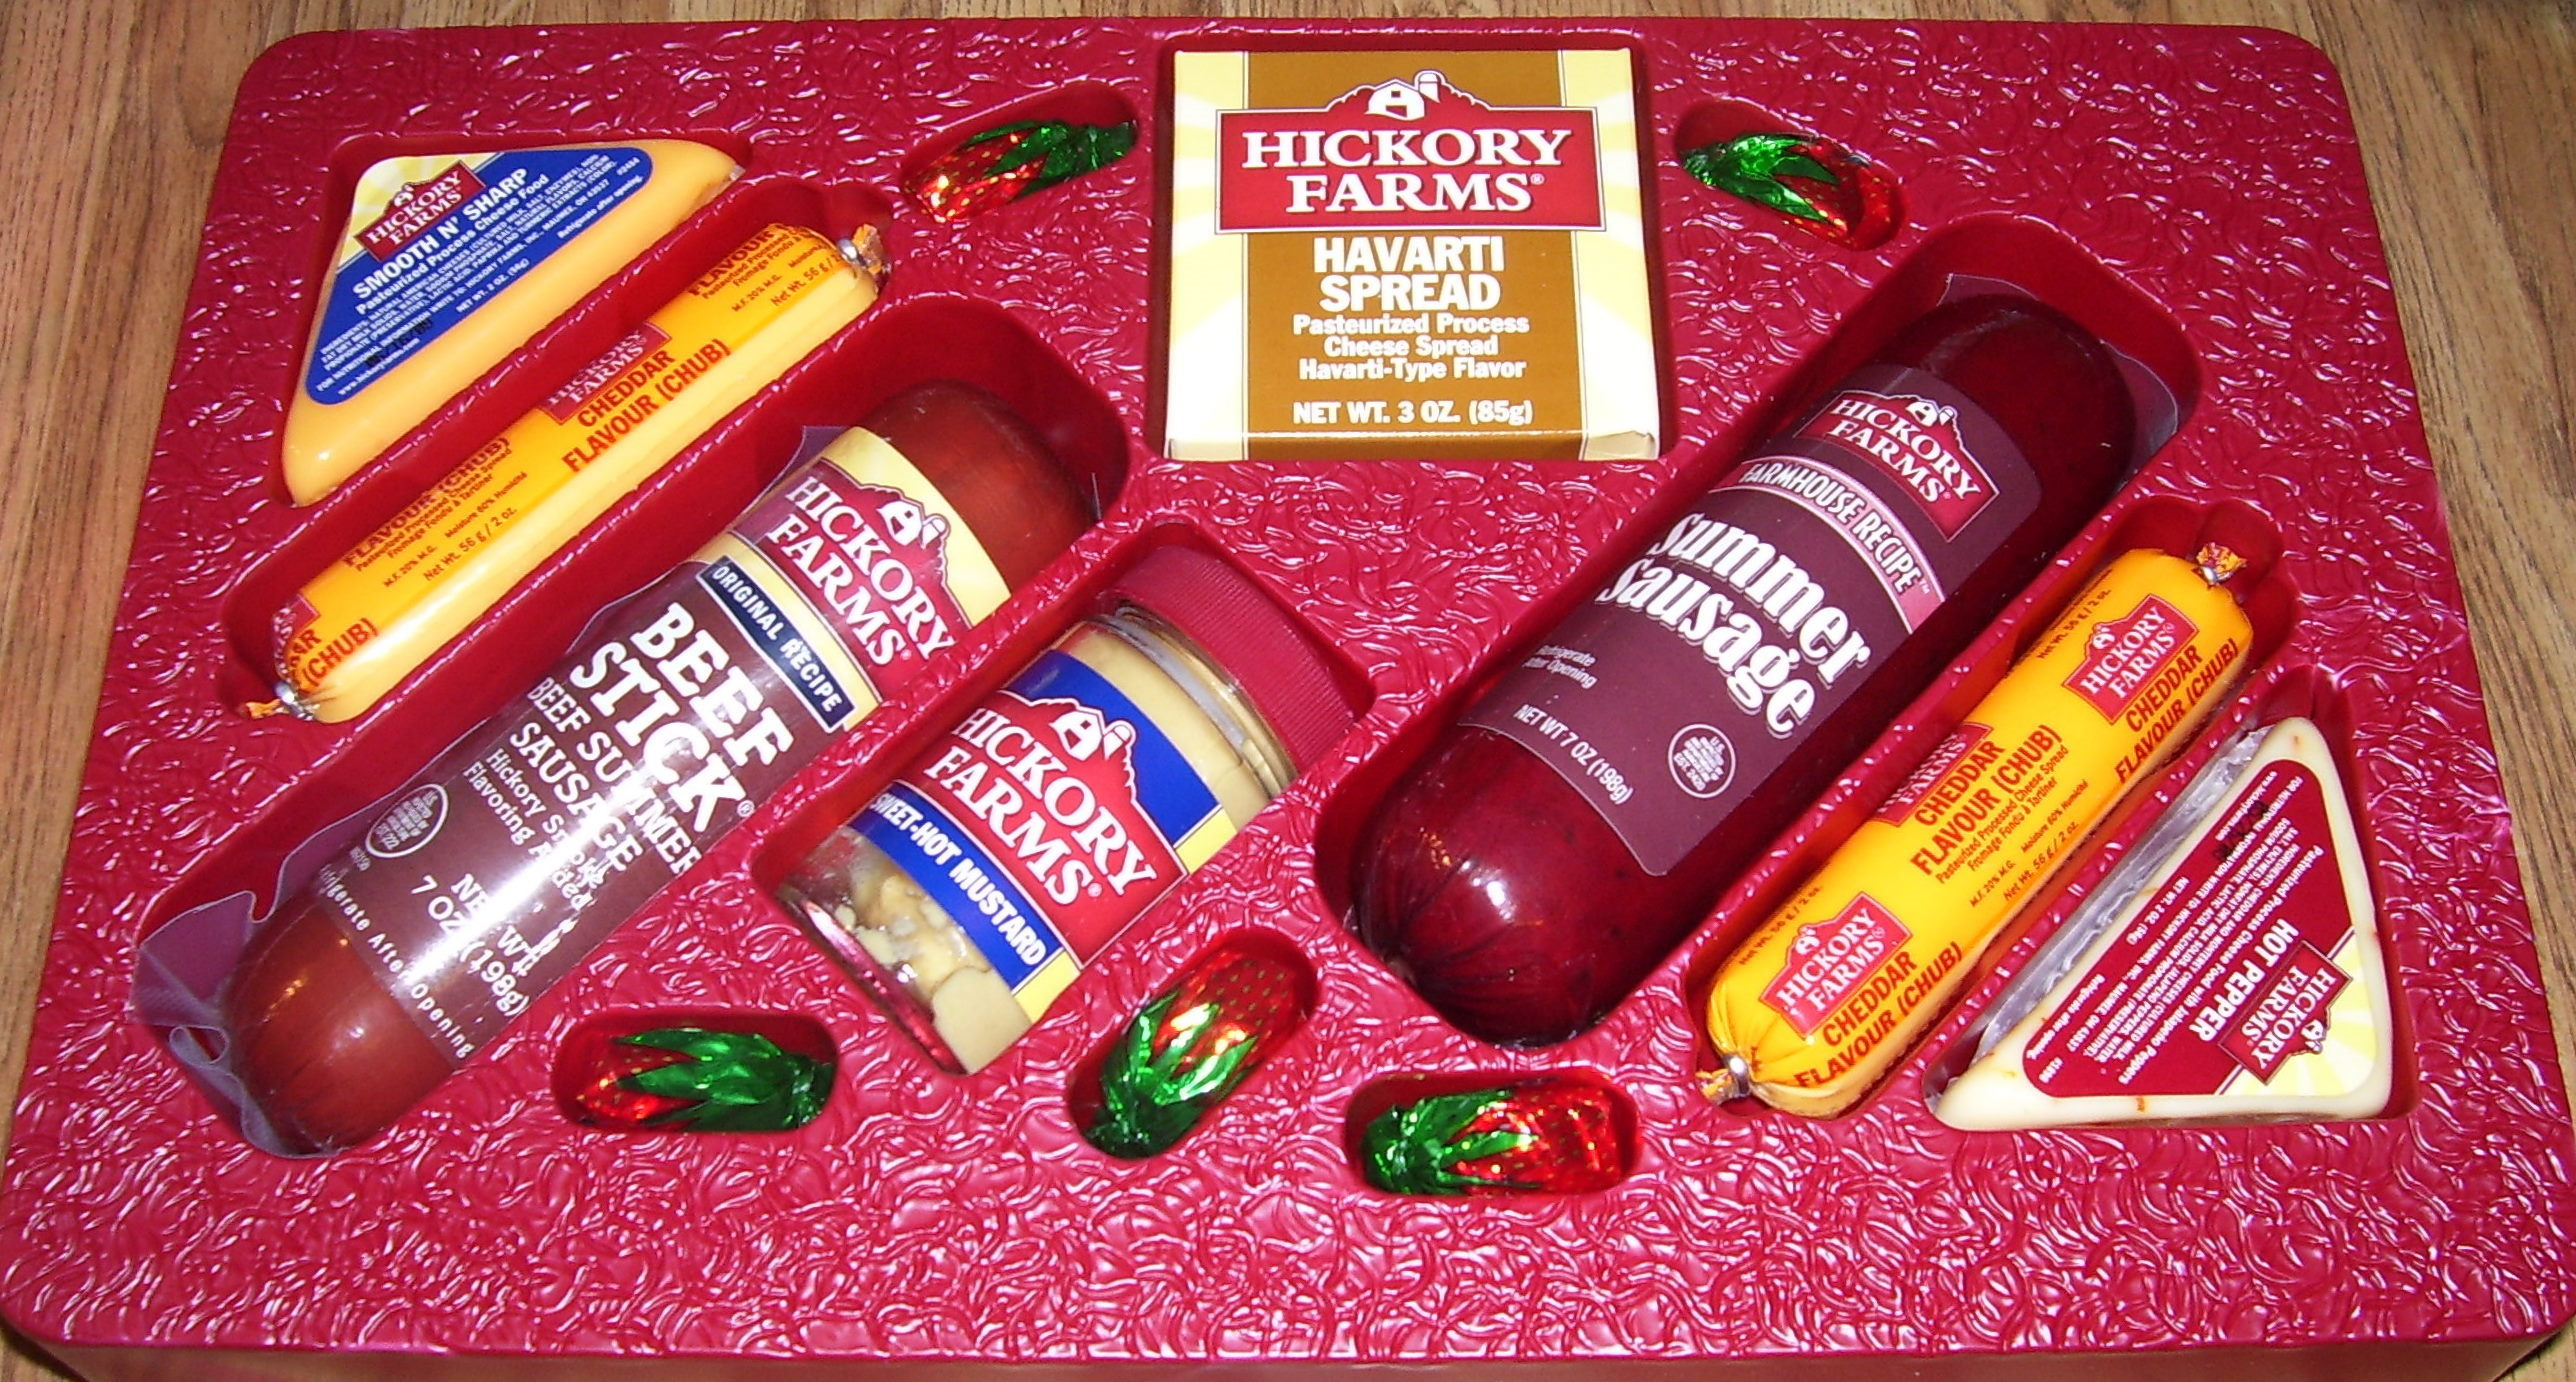 Hickory Farms Product